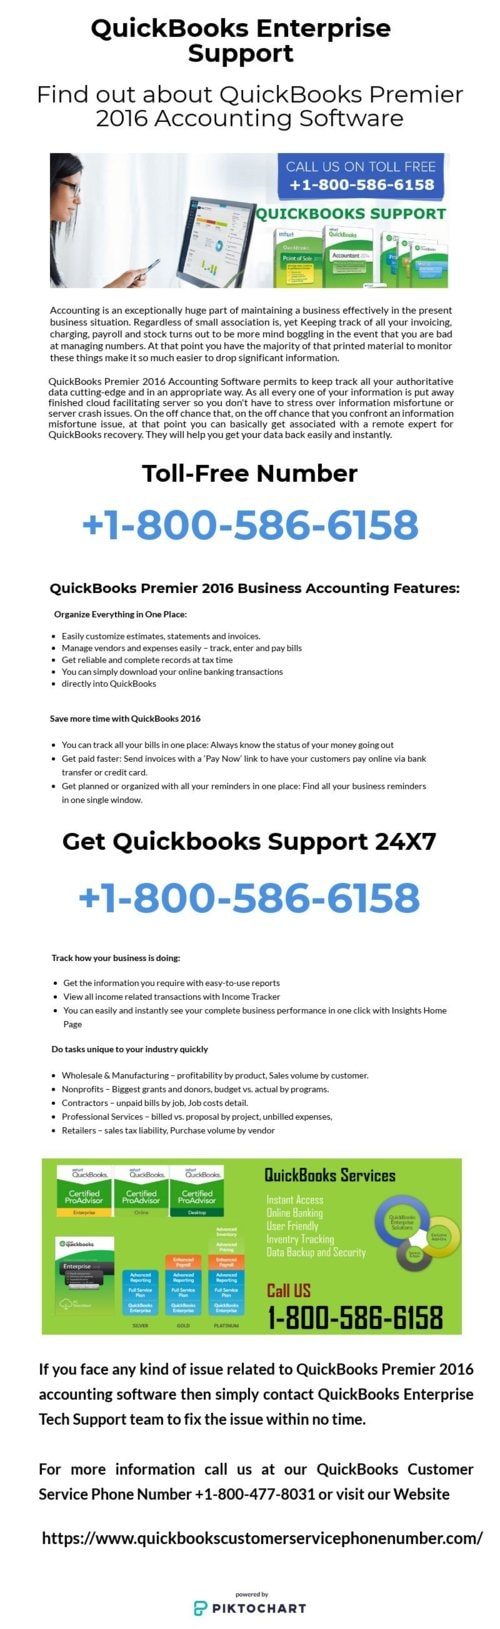 QuickBooks Premier Accounting Software take Industry Account